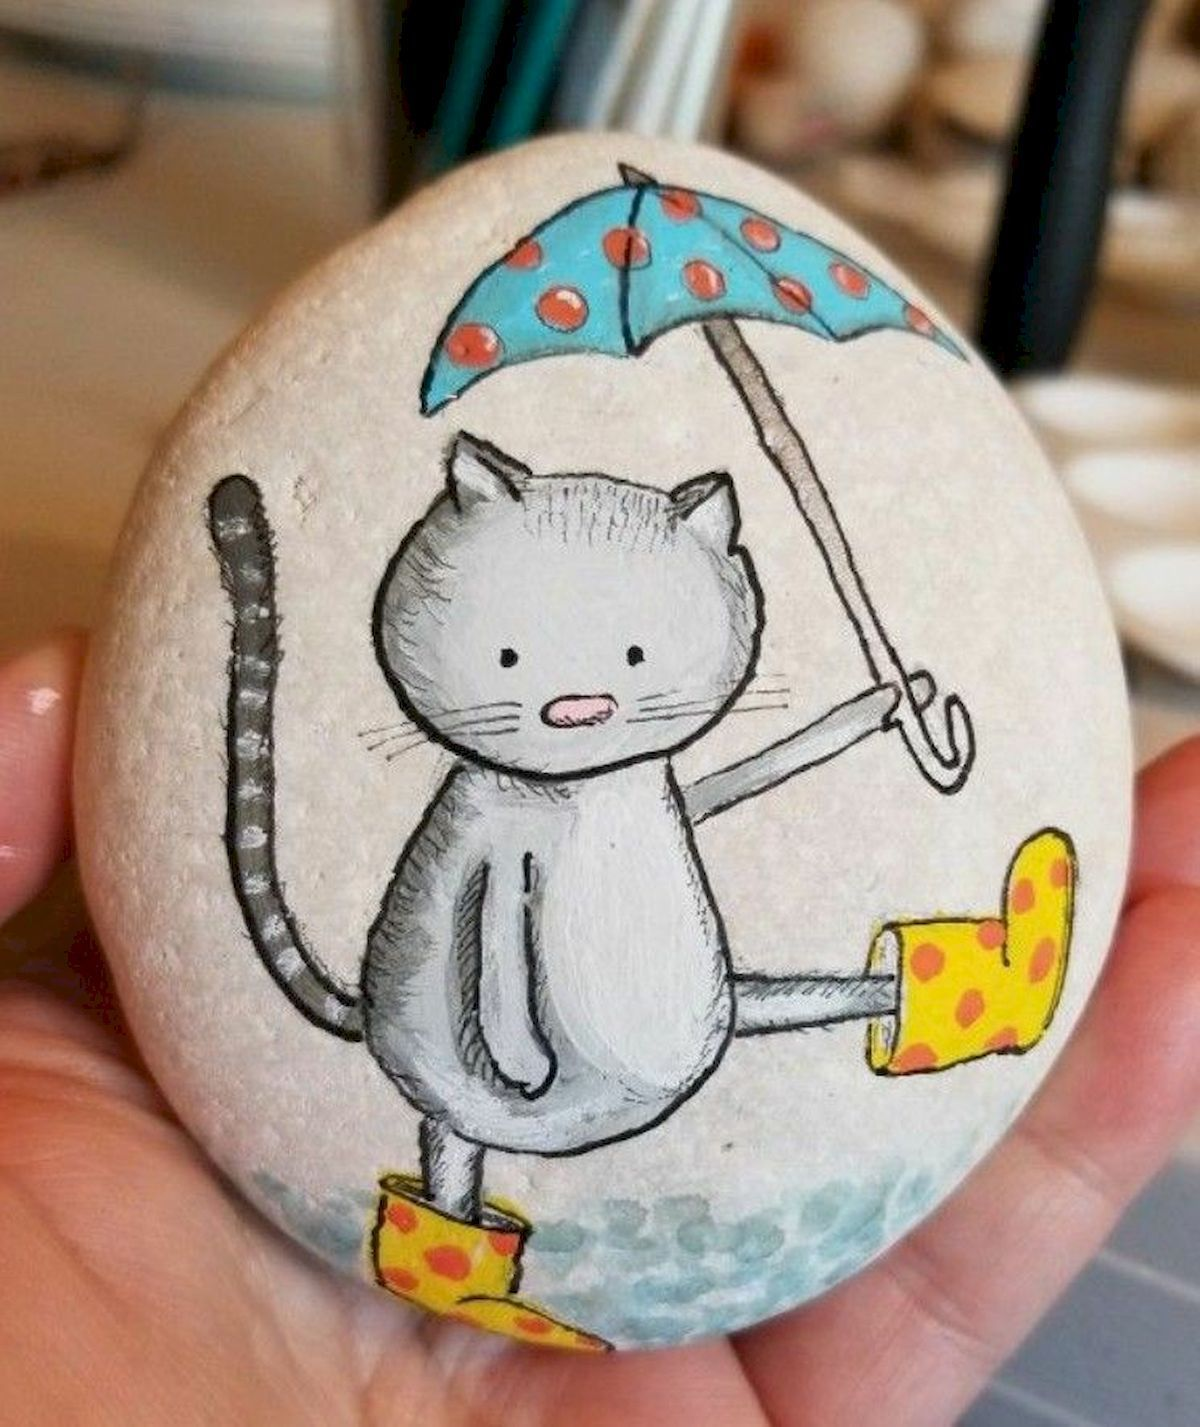 50 Best DIY Painted Rocks Animals Cats for Summer Ideas -   Welcome to our website, We hope you are satisfied with the content we offer. If there is a problem - #animals #cats #DIY #ideas #painted #Pets #Petsaccessories #Petsdiy #Petsdogs #Petsdogsaccessories #Petsdogsbreeds #Petsdogspuppies #Petsfish #Petsfunny #Petsideas #Petsquotes #Petsunique #rocks #smallPets #smallPetsforkids #summer